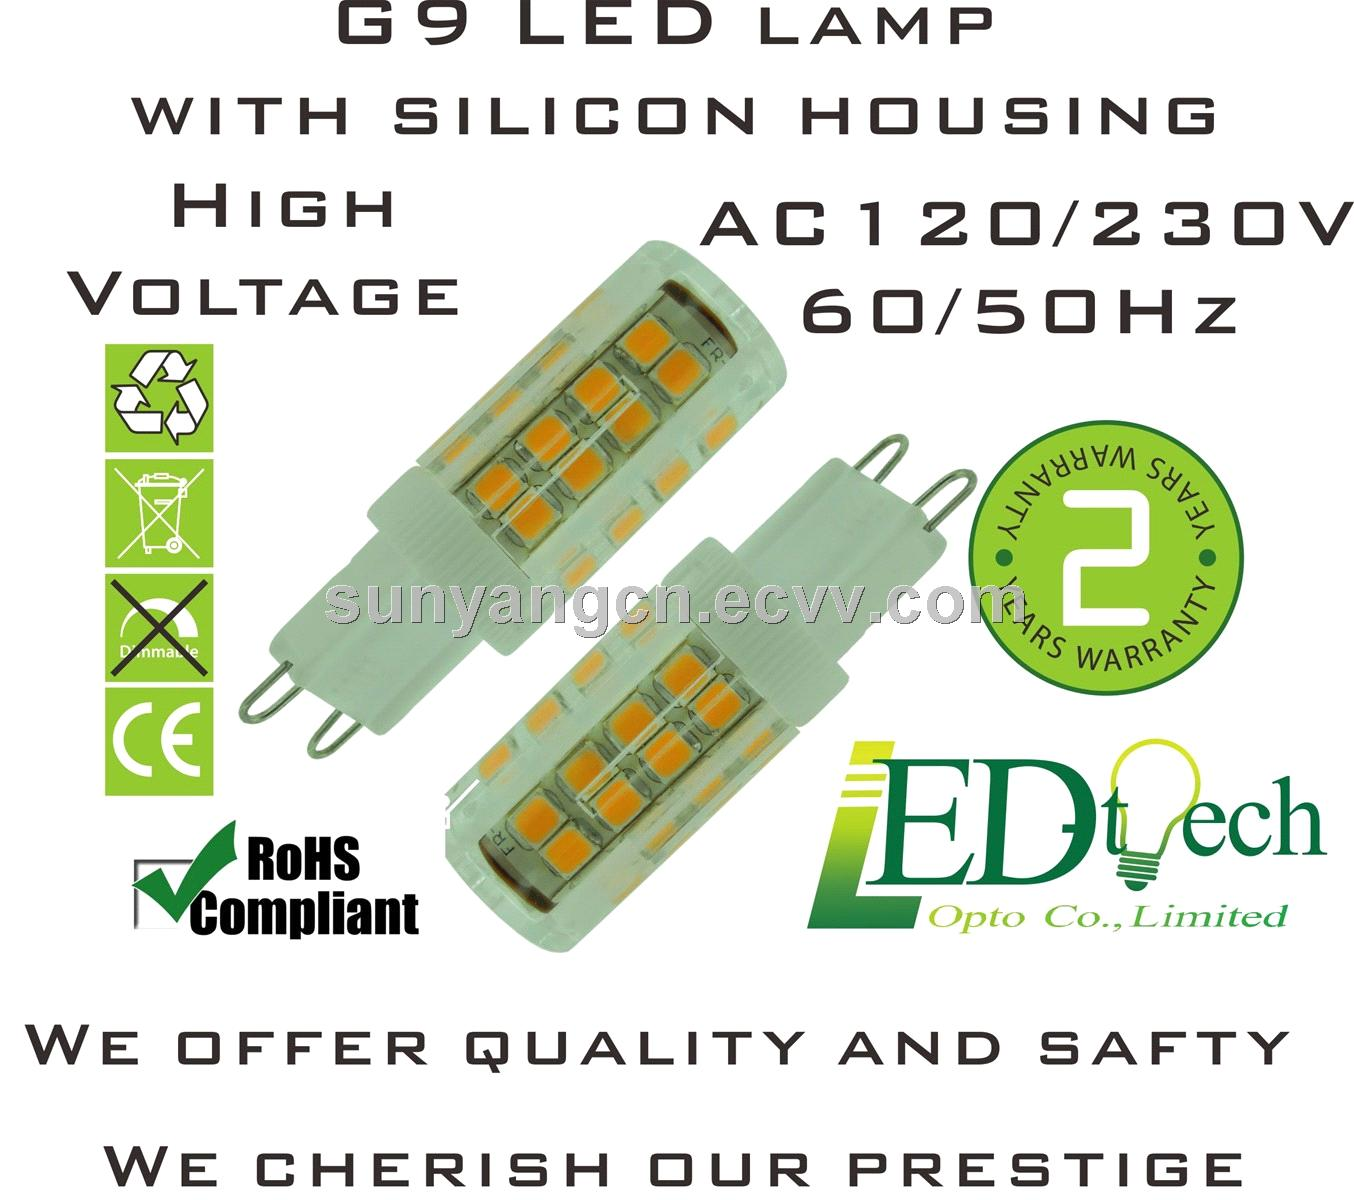 AC120V/AC230V,G9, LED 3.5W,51 pcs,SMD 2835,Taiwan Epistar chips,no.40773